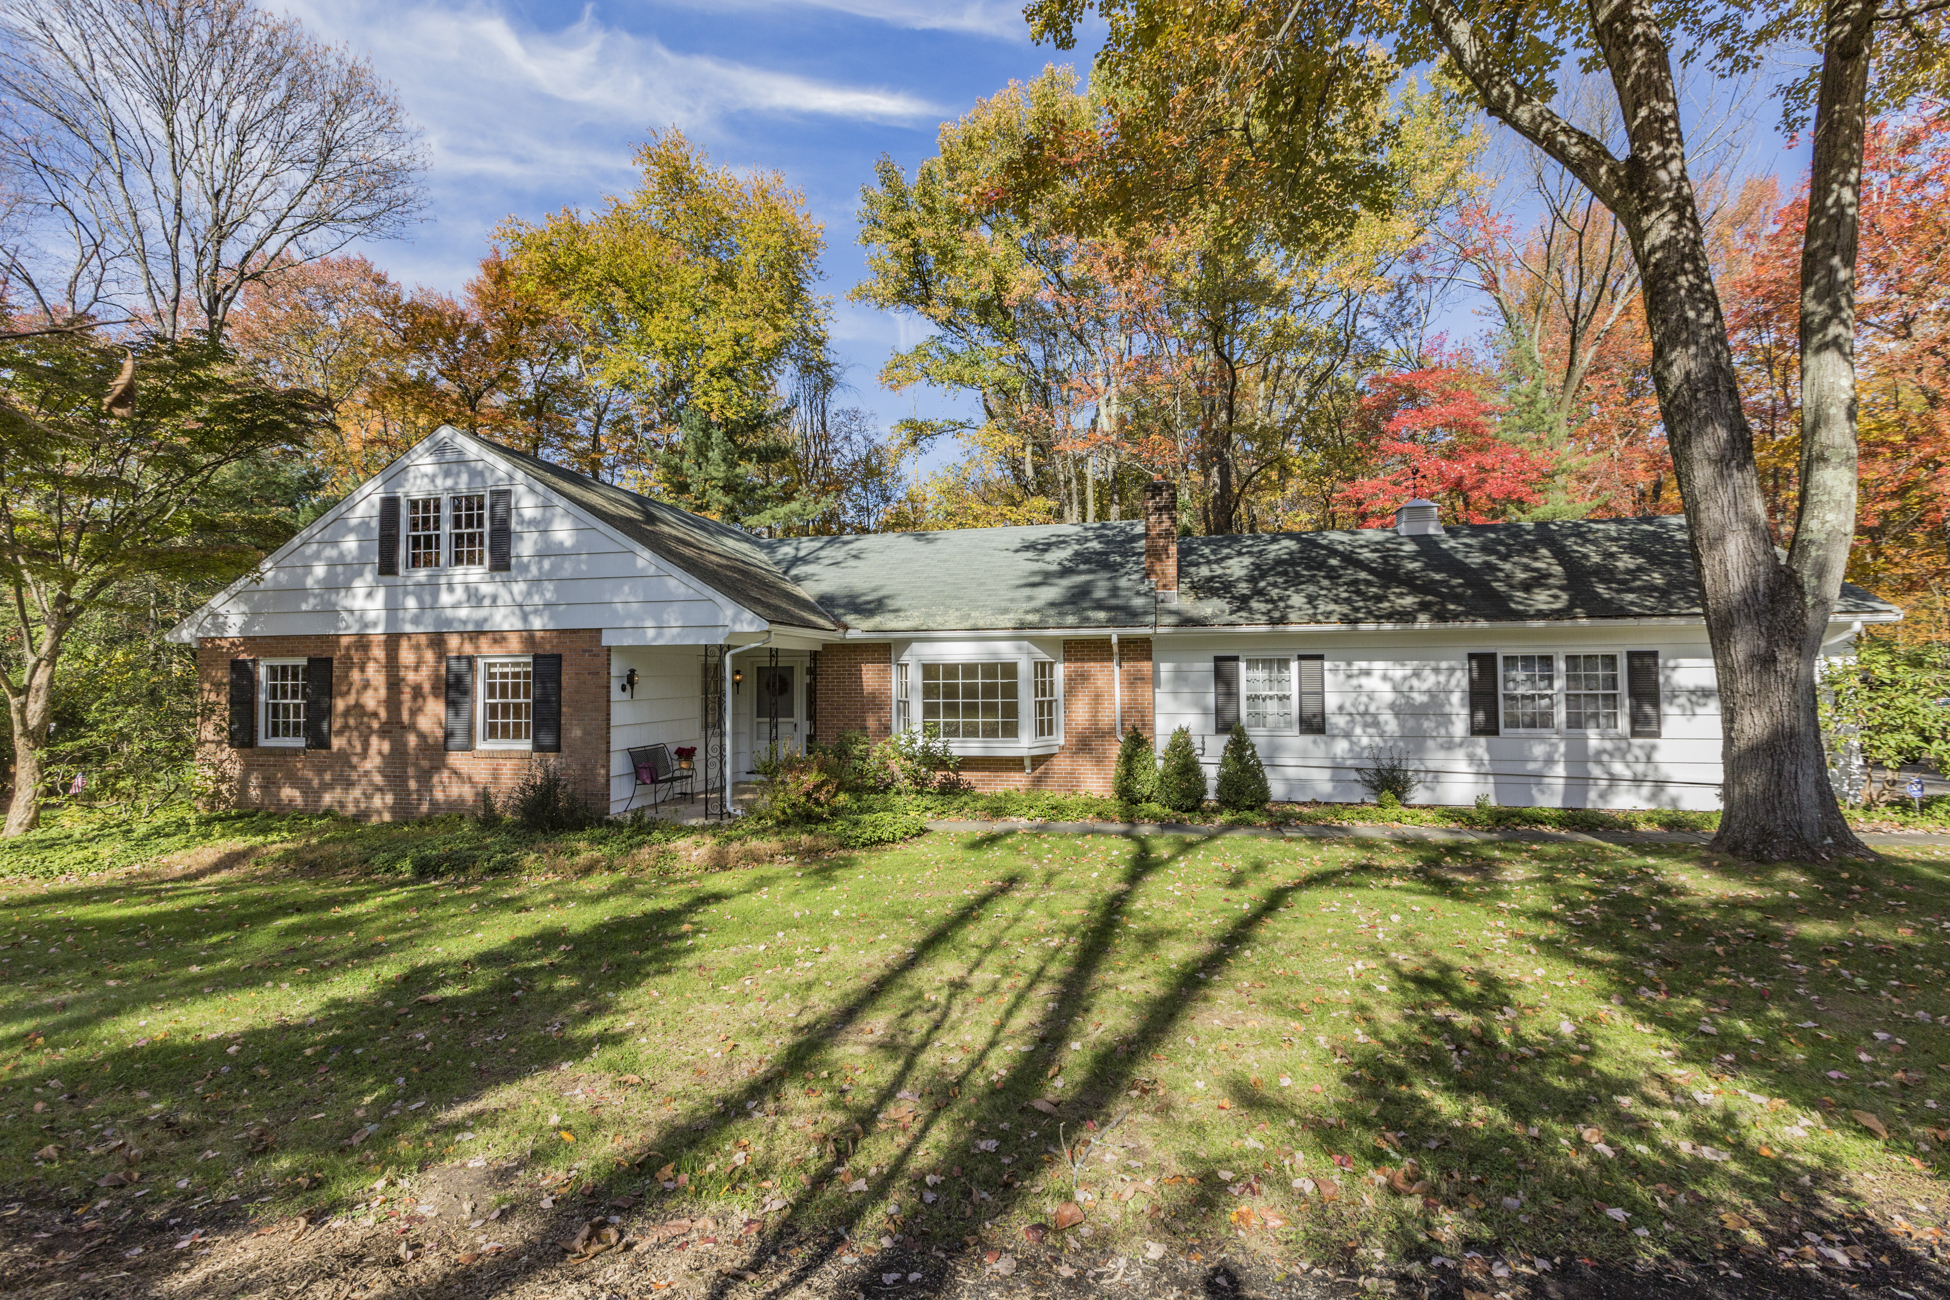 Maison unifamiliale pour l Vente à Expanded Ranch Delights with Warmth and Potential - Lawrence Township 6 Van Kirk Road Princeton, New Jersey, 08540 États-Unis